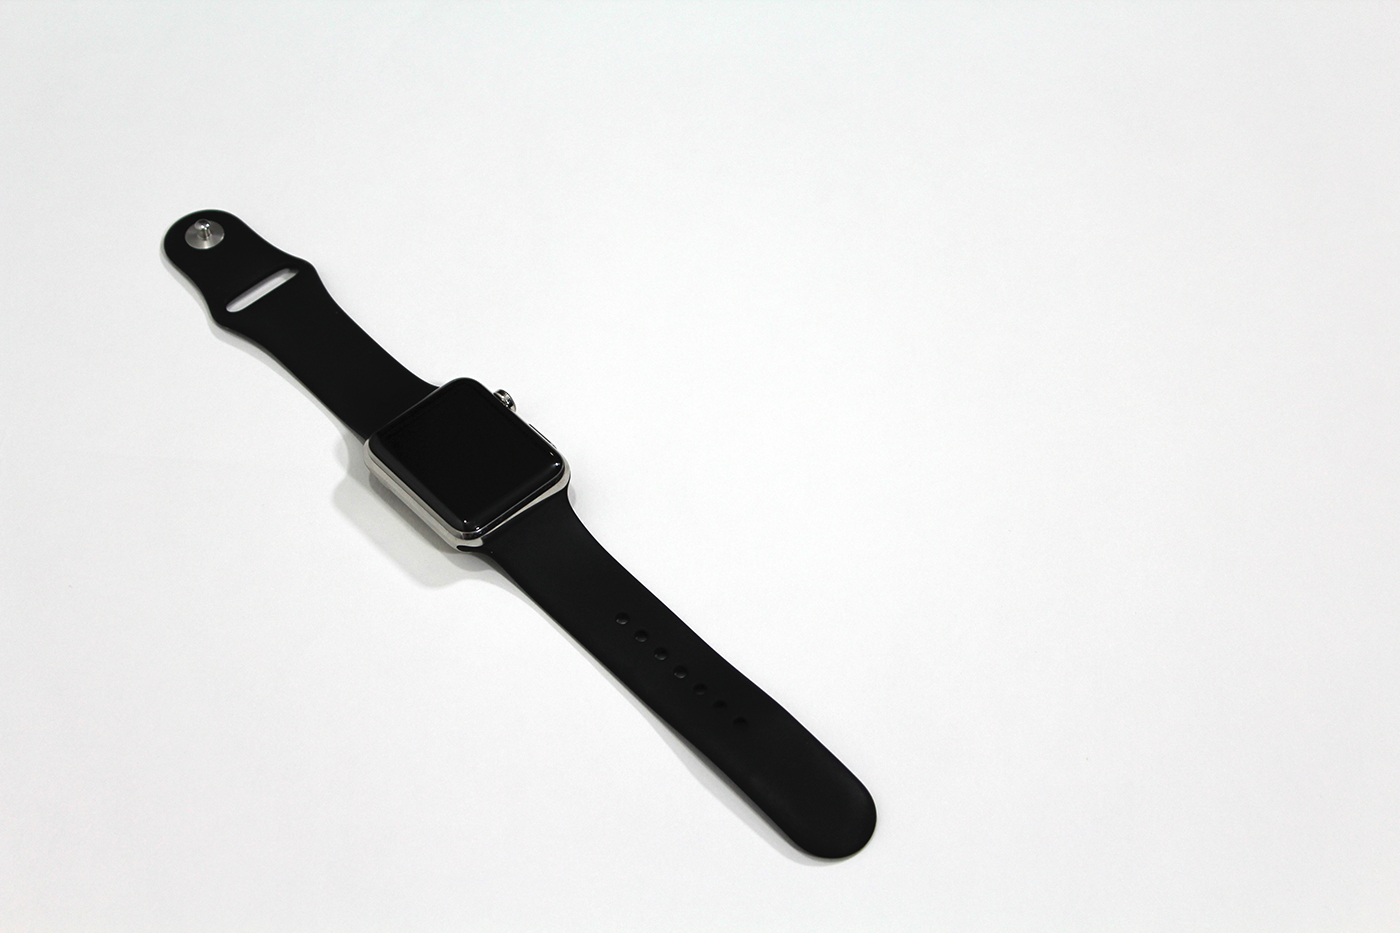 Apple Watch with black sports band